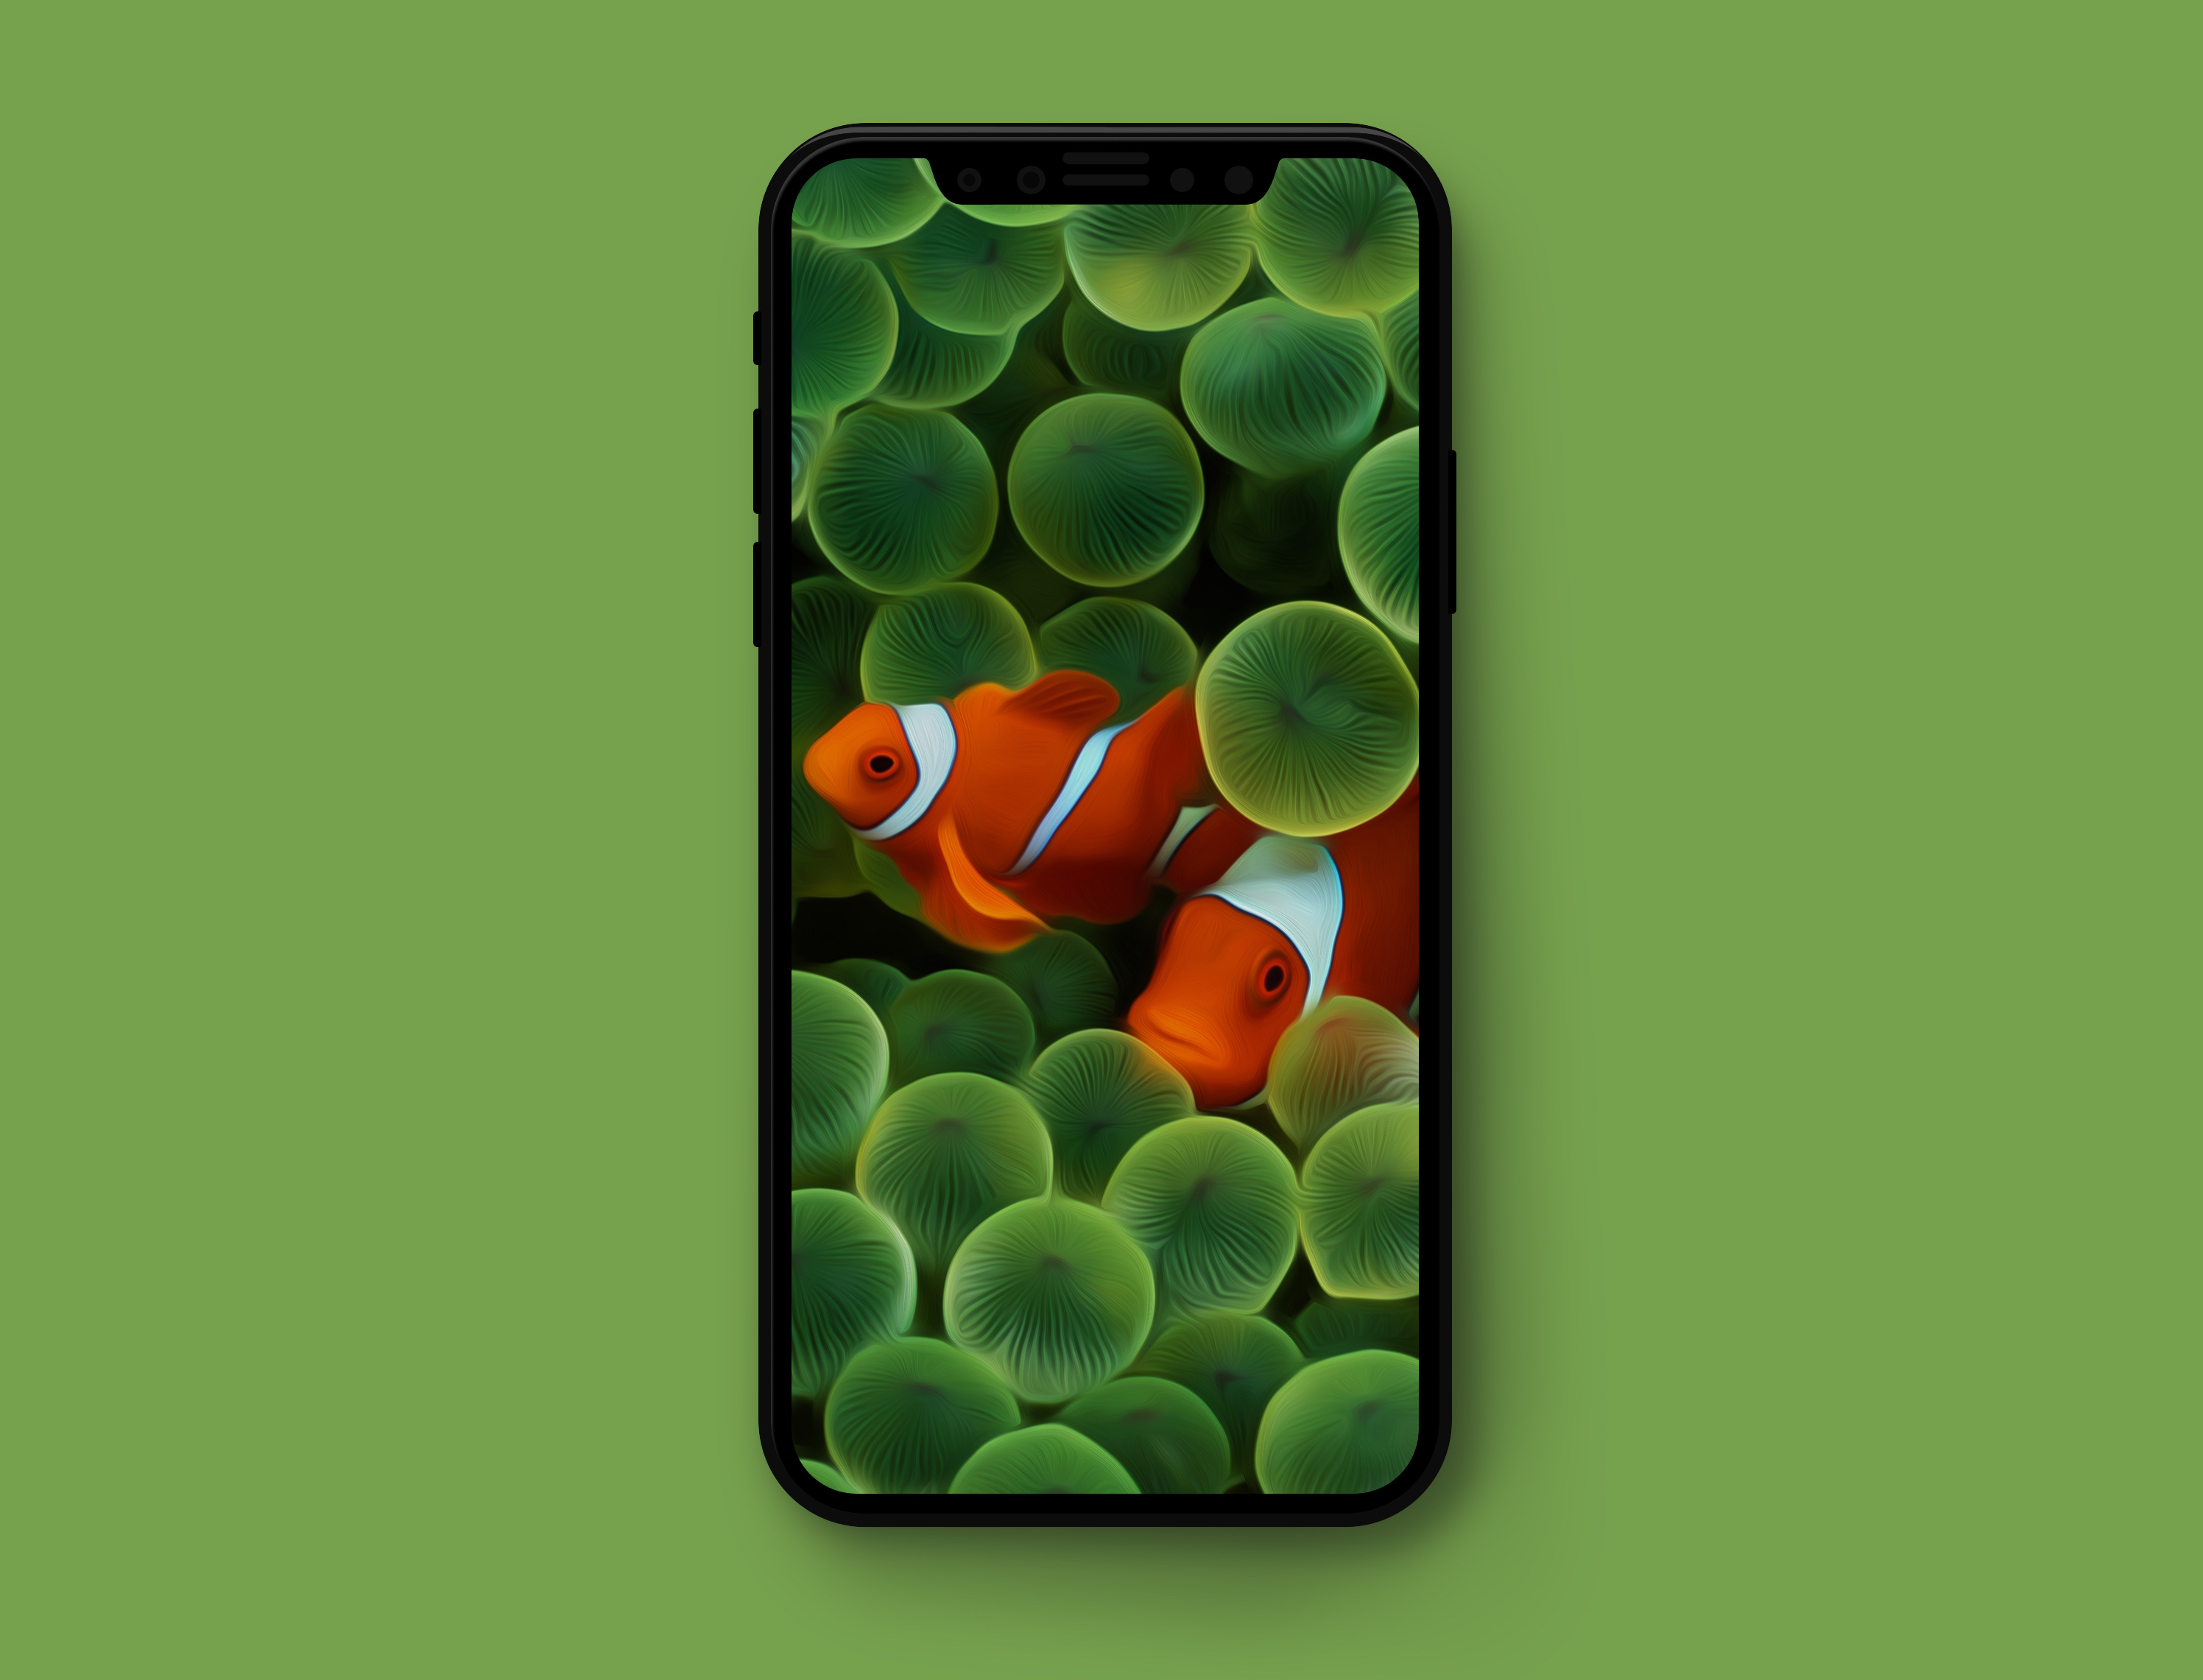 Apple Iphone 2g Wallpapers Original Apple Wallpapers Optimized For Iphone X